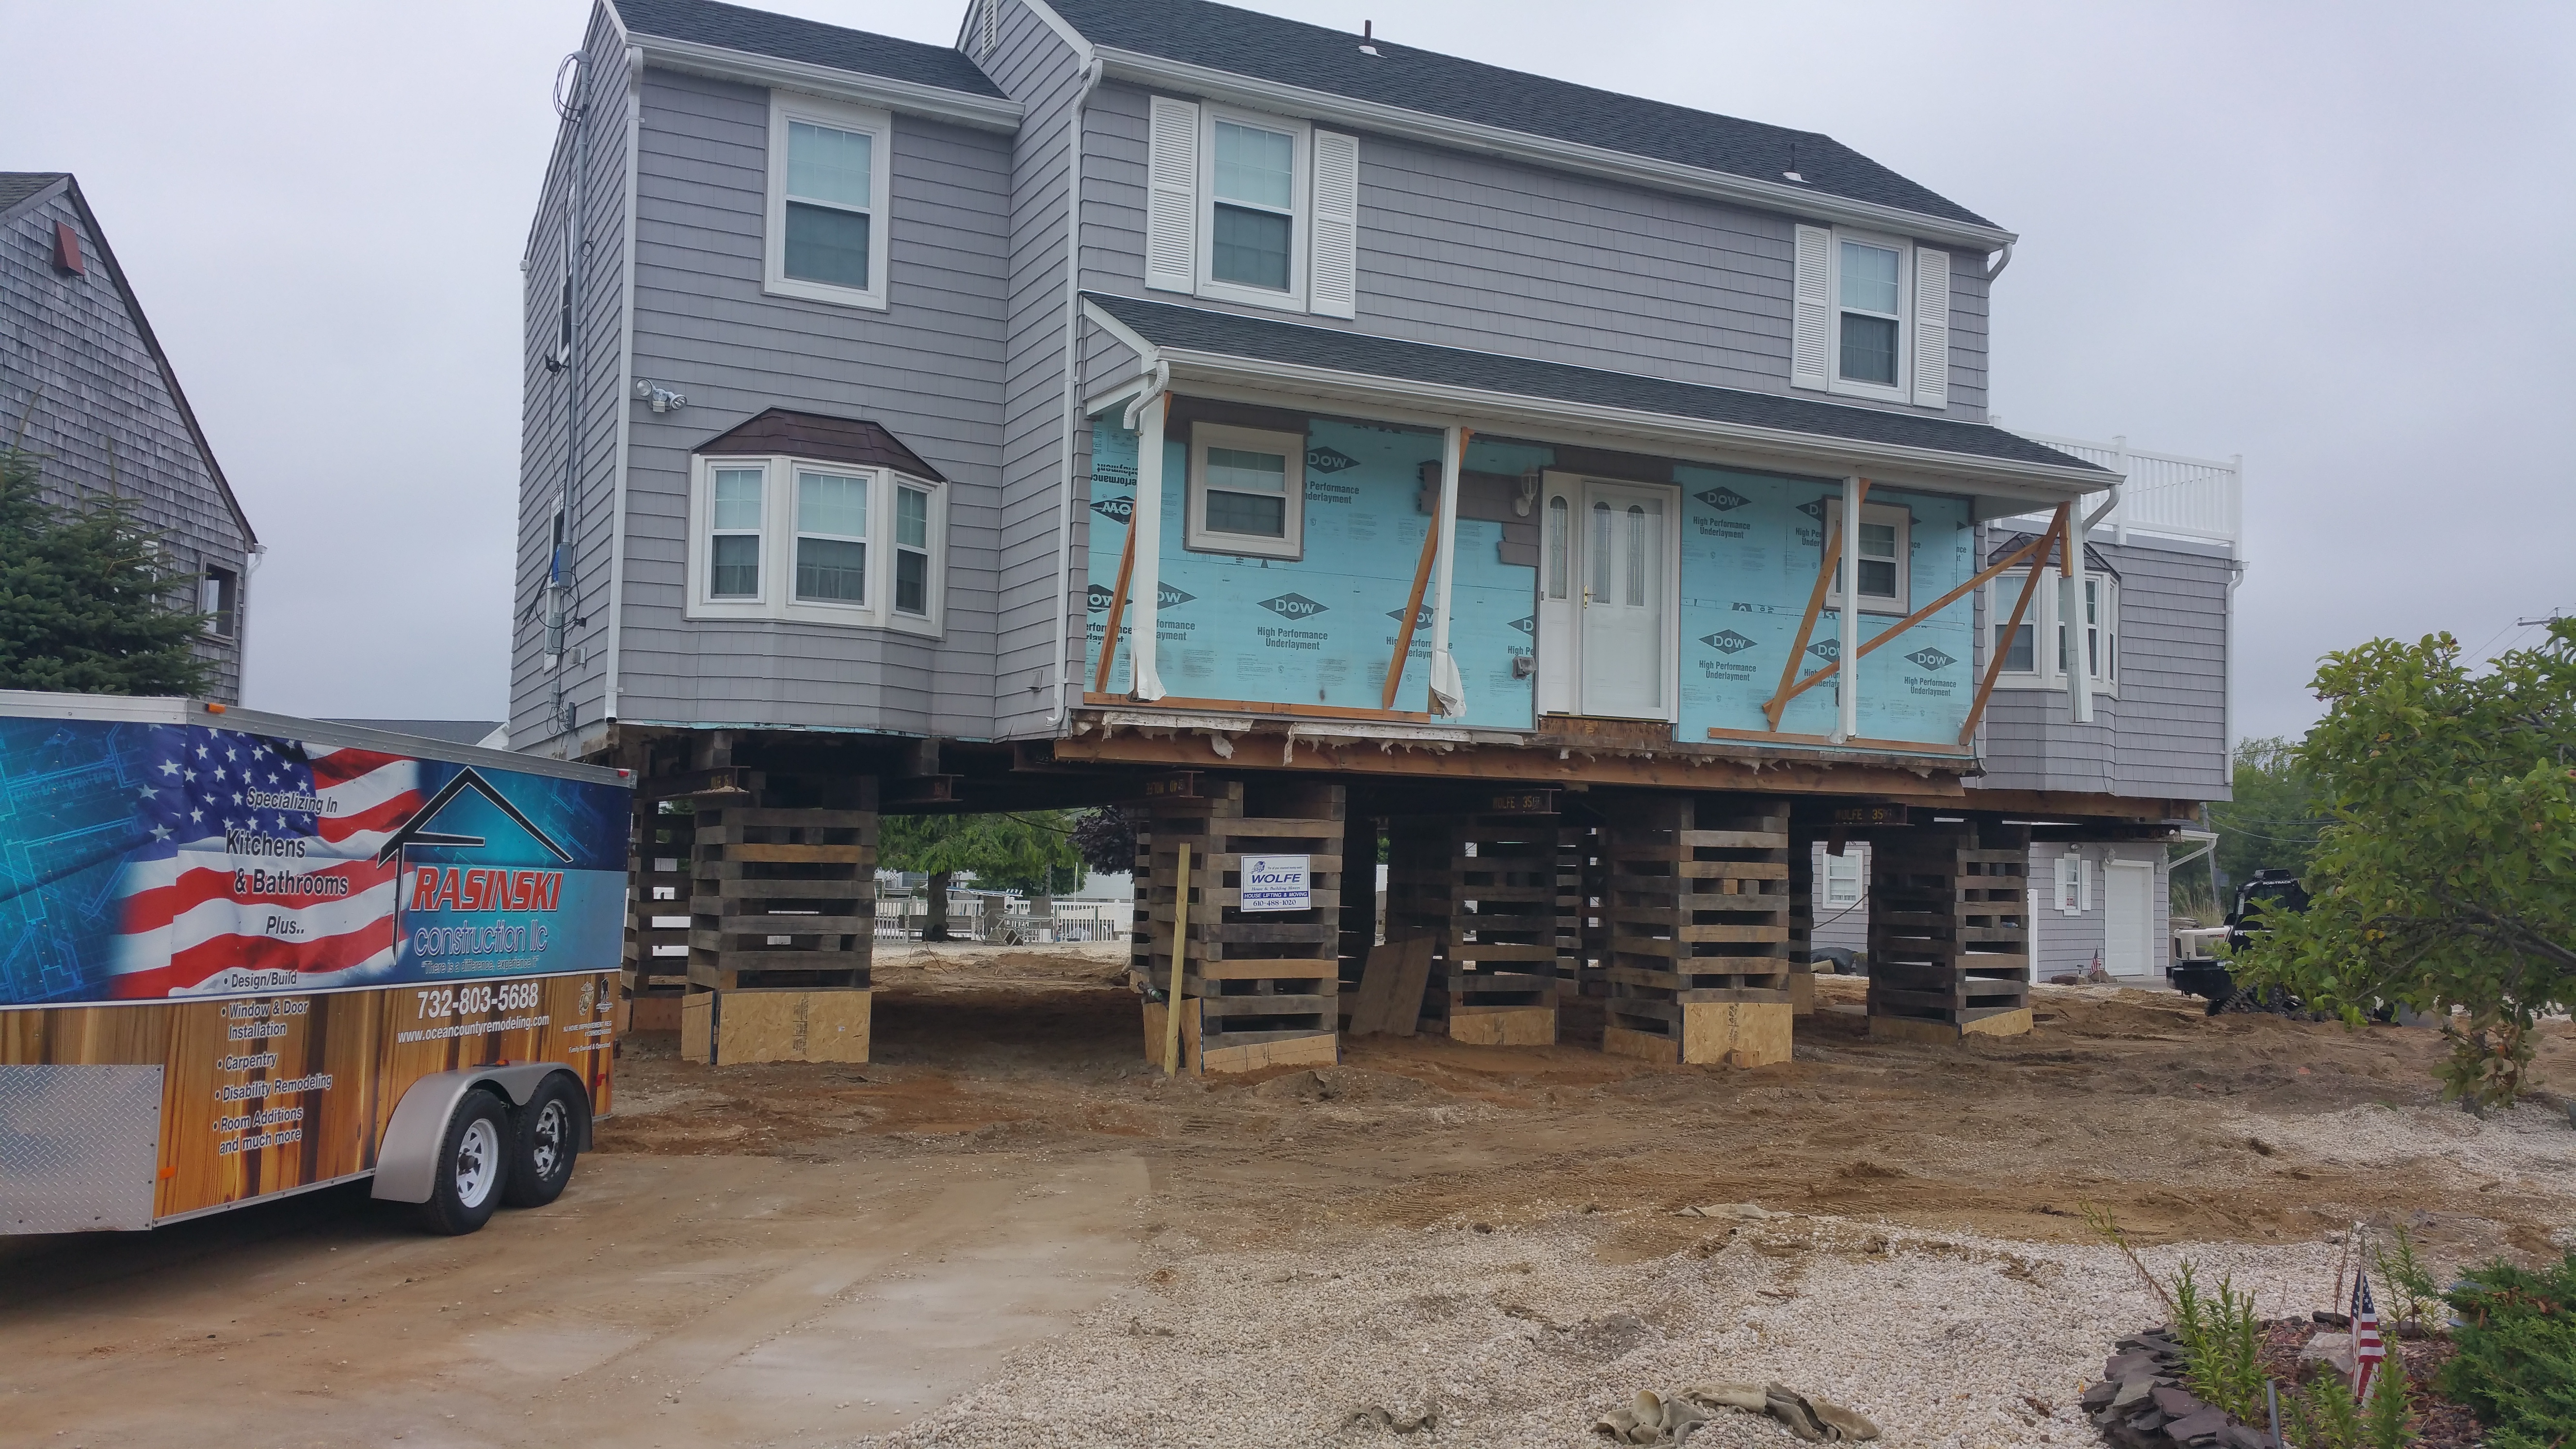 House Raised and Ready for Foundation in Ocean County New Jersey